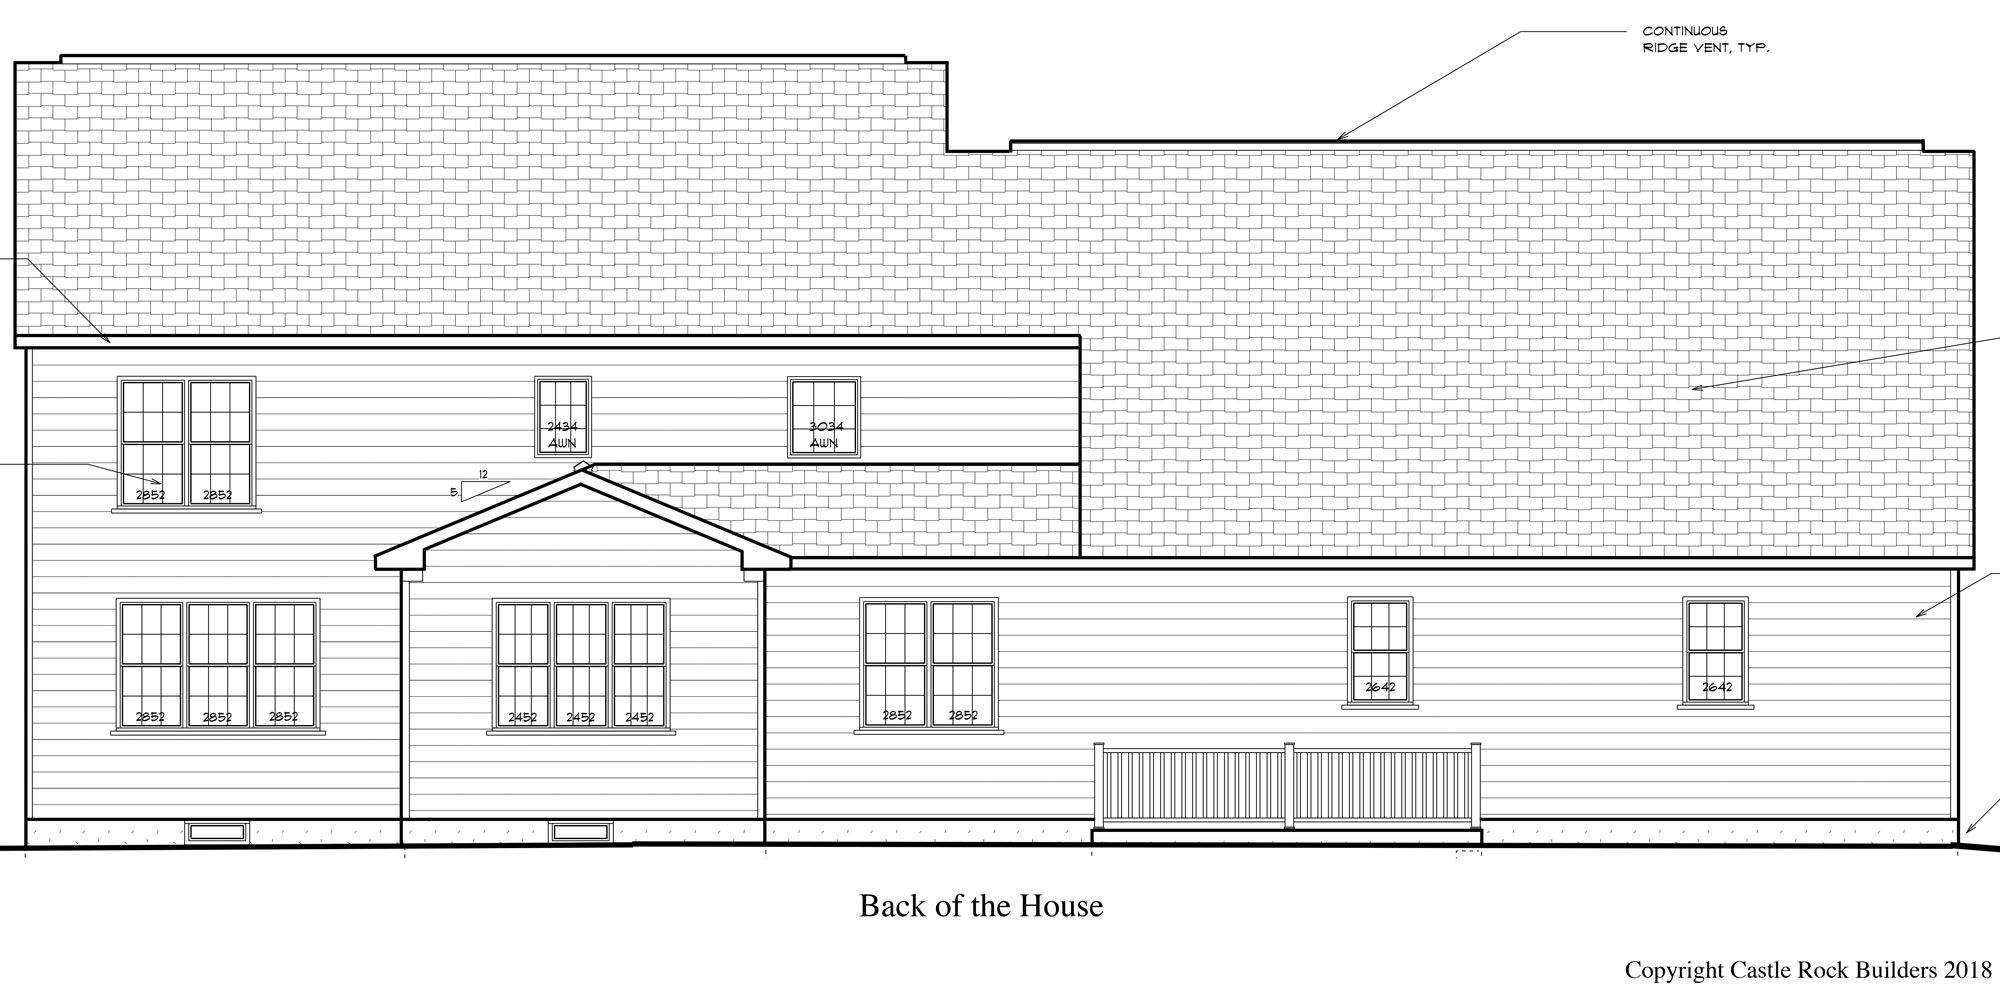 Plans for a House with Mother in Law Suite. Looking for a house plan that has a full mother in law suite apartment? I'll help you find the best way to find a plan that works for you. I've shared our final plan as inspiration.